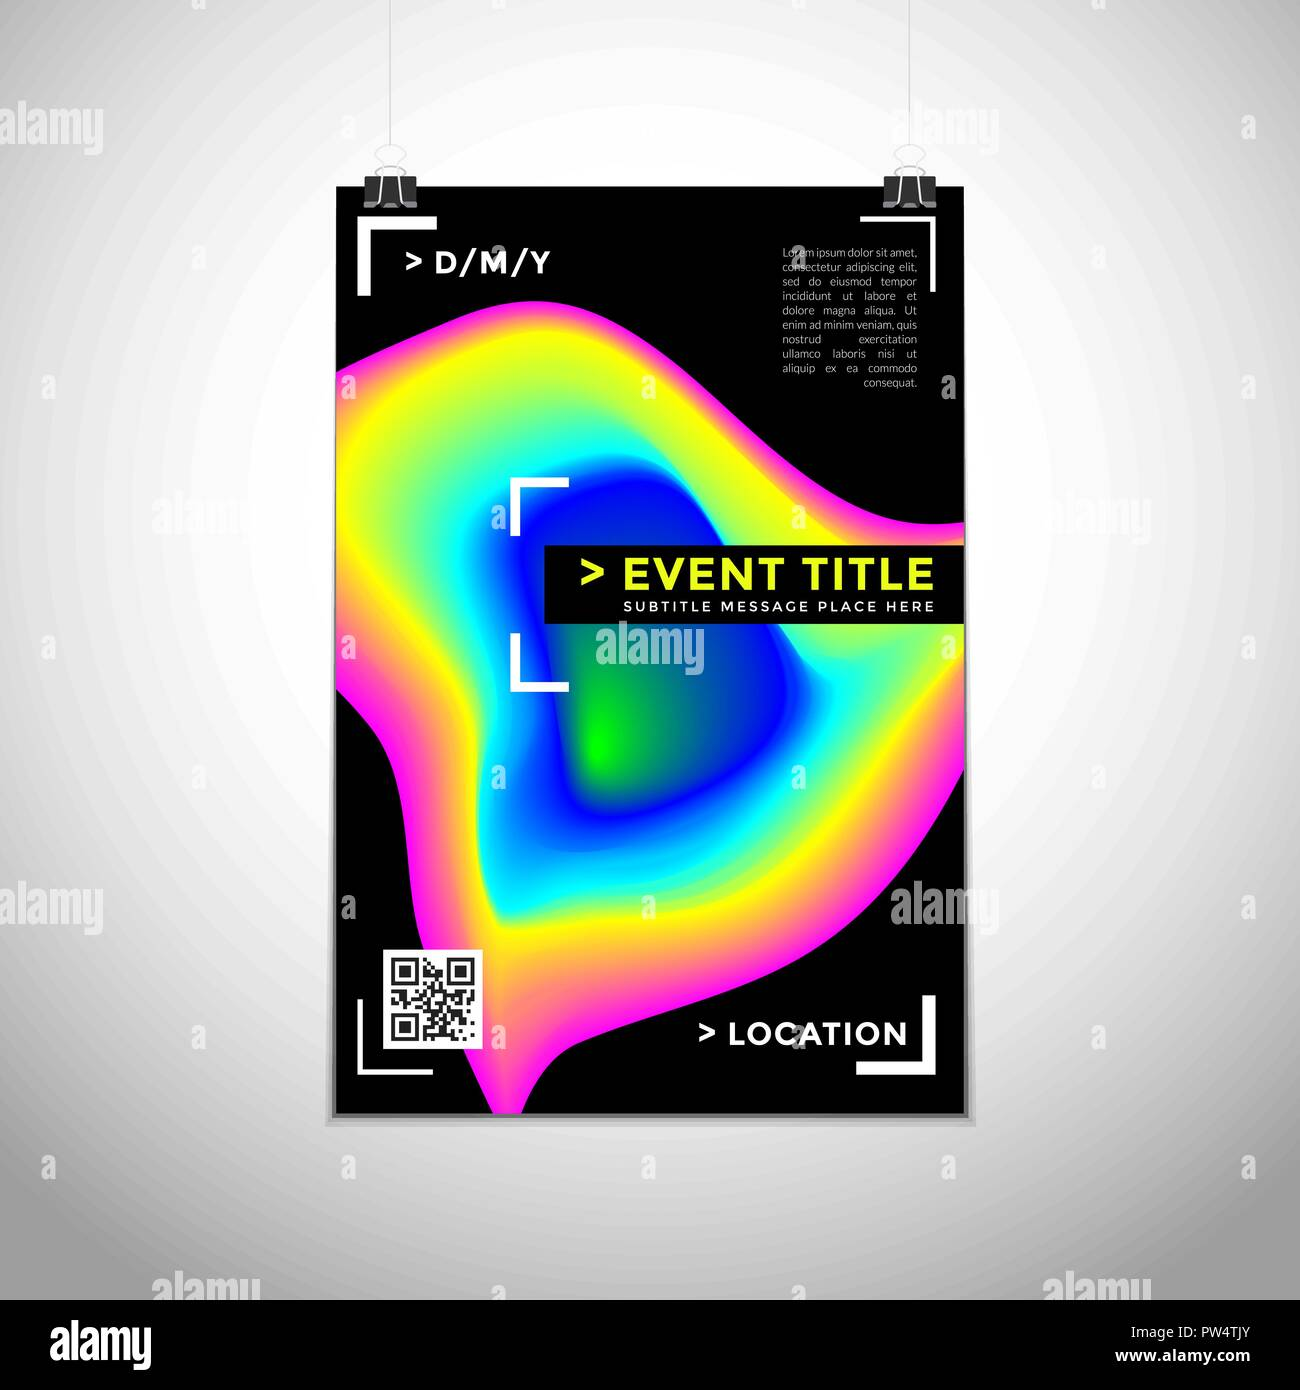 vector vibrant gradient colors abstract shapes dynamic modern poster design template trendy brochure mockup invitation flyer layout minimal creative d